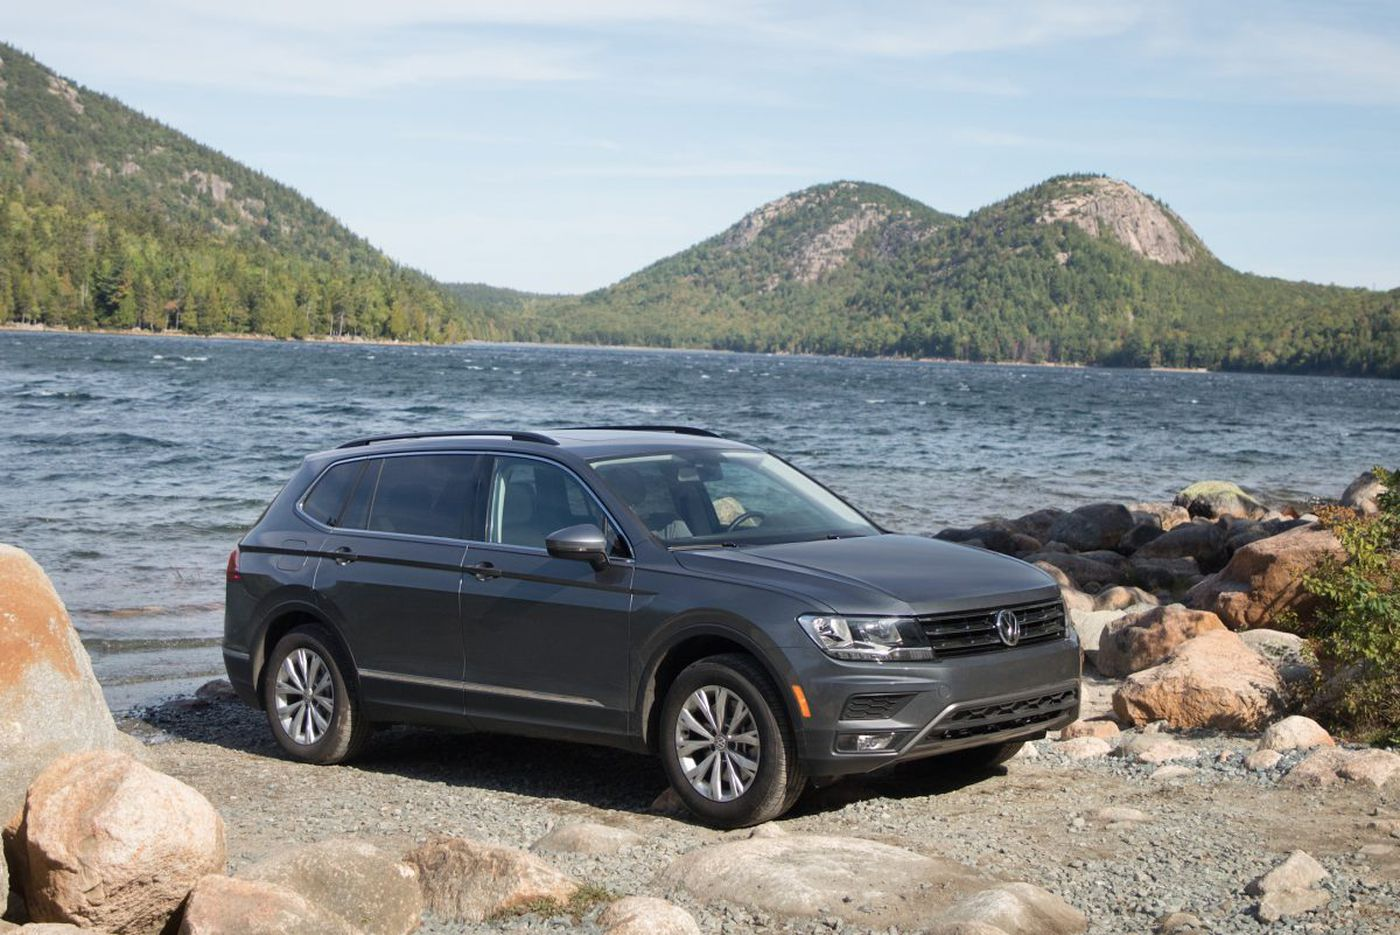 Volkswagen Tiguan tries punching above its weight